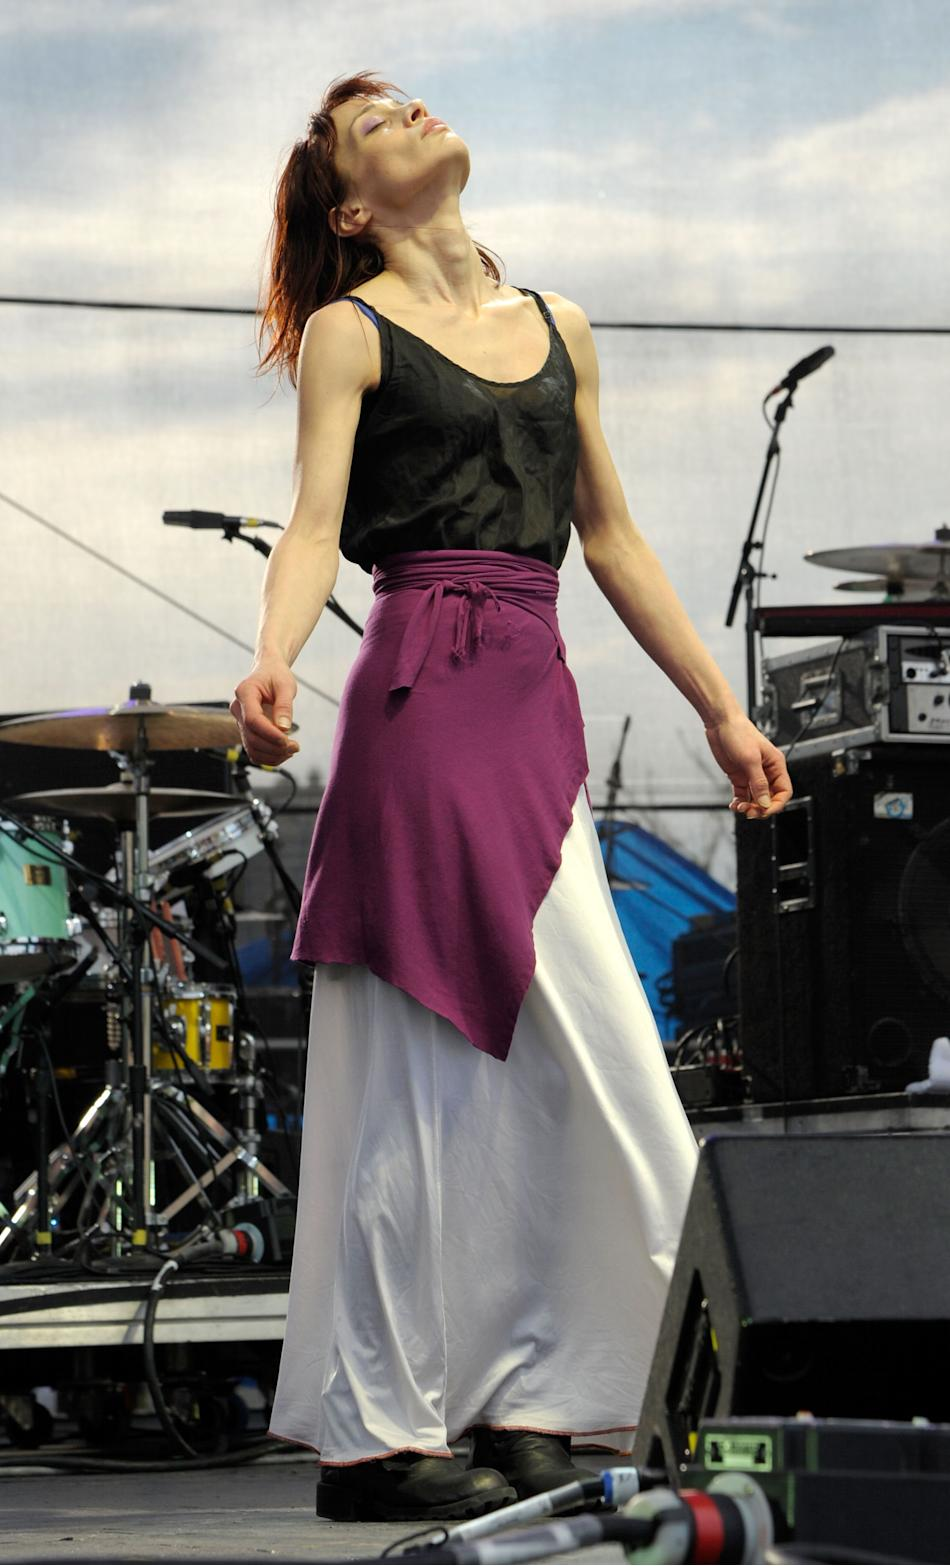 Poised like a Phoenix on the Governor's Ball Music Festival stage in late June, the next chapter of Fiona's career was reborn as she hit the crowd with melody and organic layers of danceable fabric.